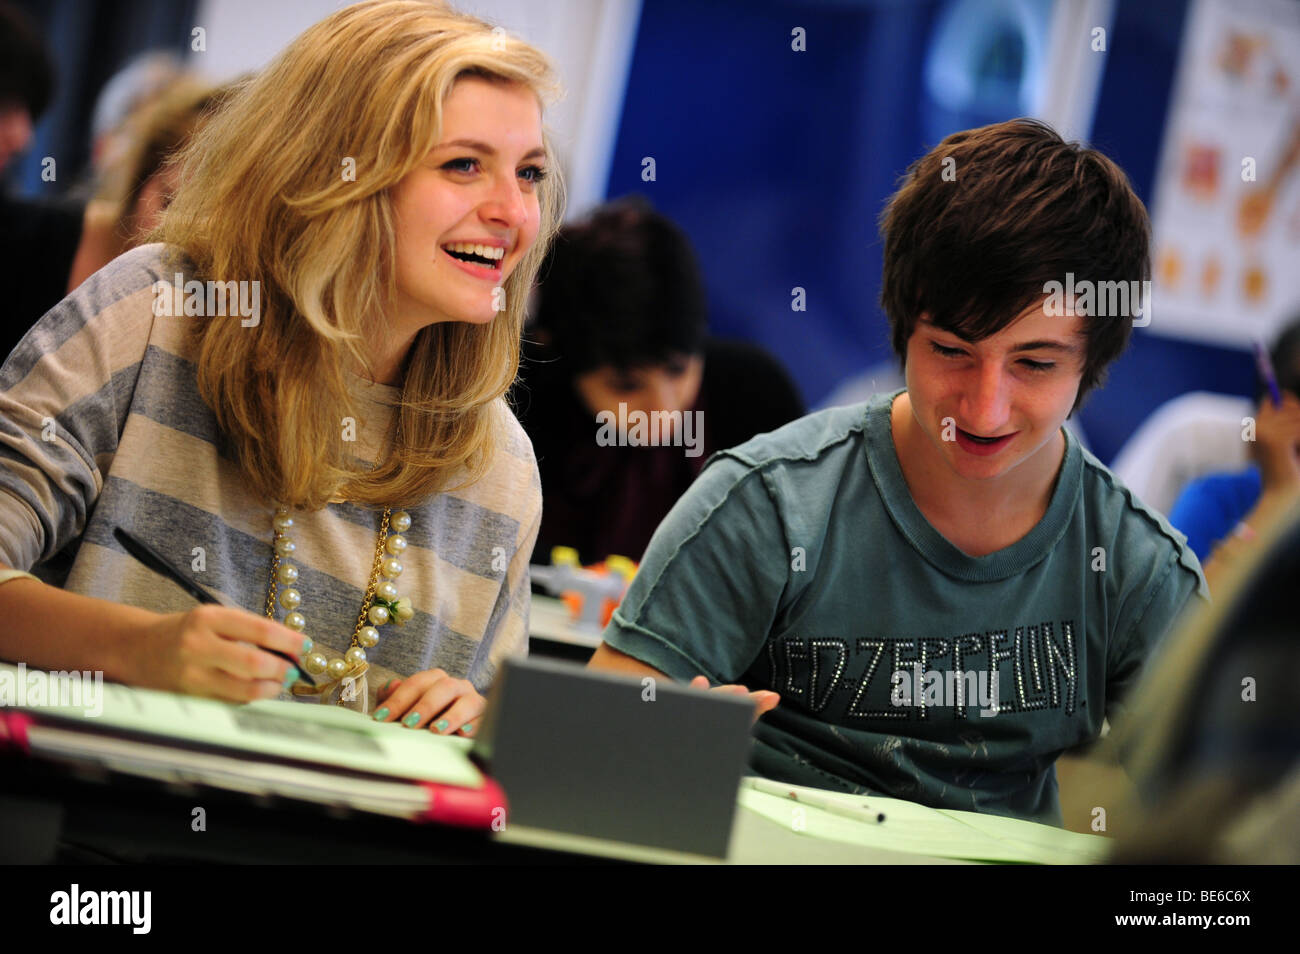 Students in lecture at sixth form further education college - Stock Image